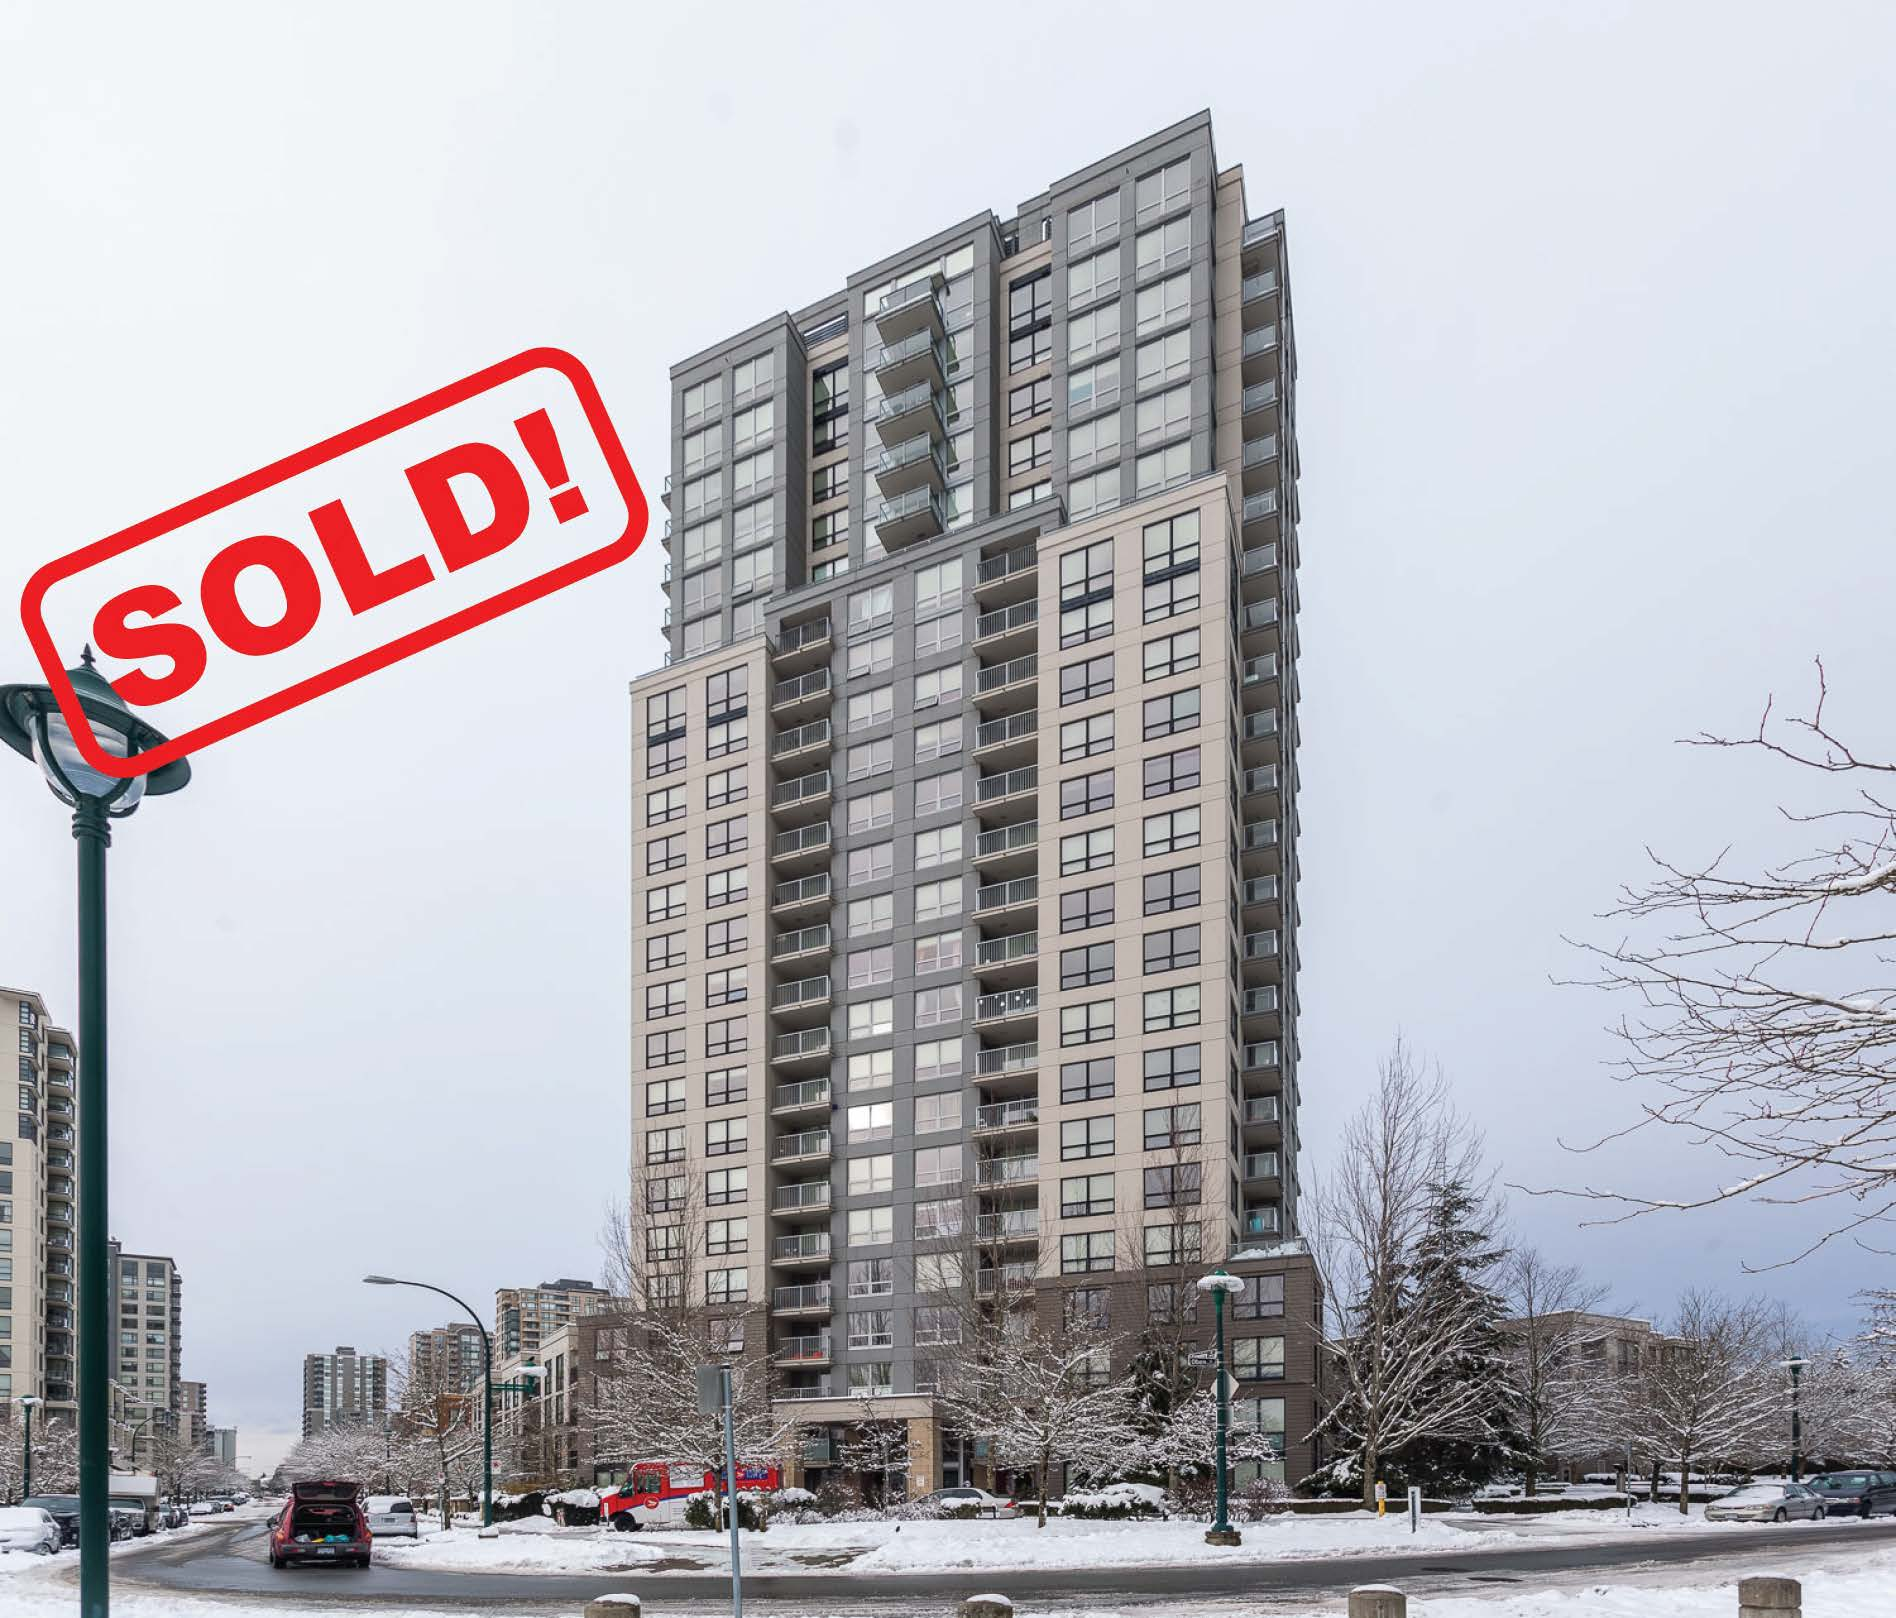 309-3663 Crowley Drive   sold for: $552,000  3 Bed | 2 Bath | 937 SF